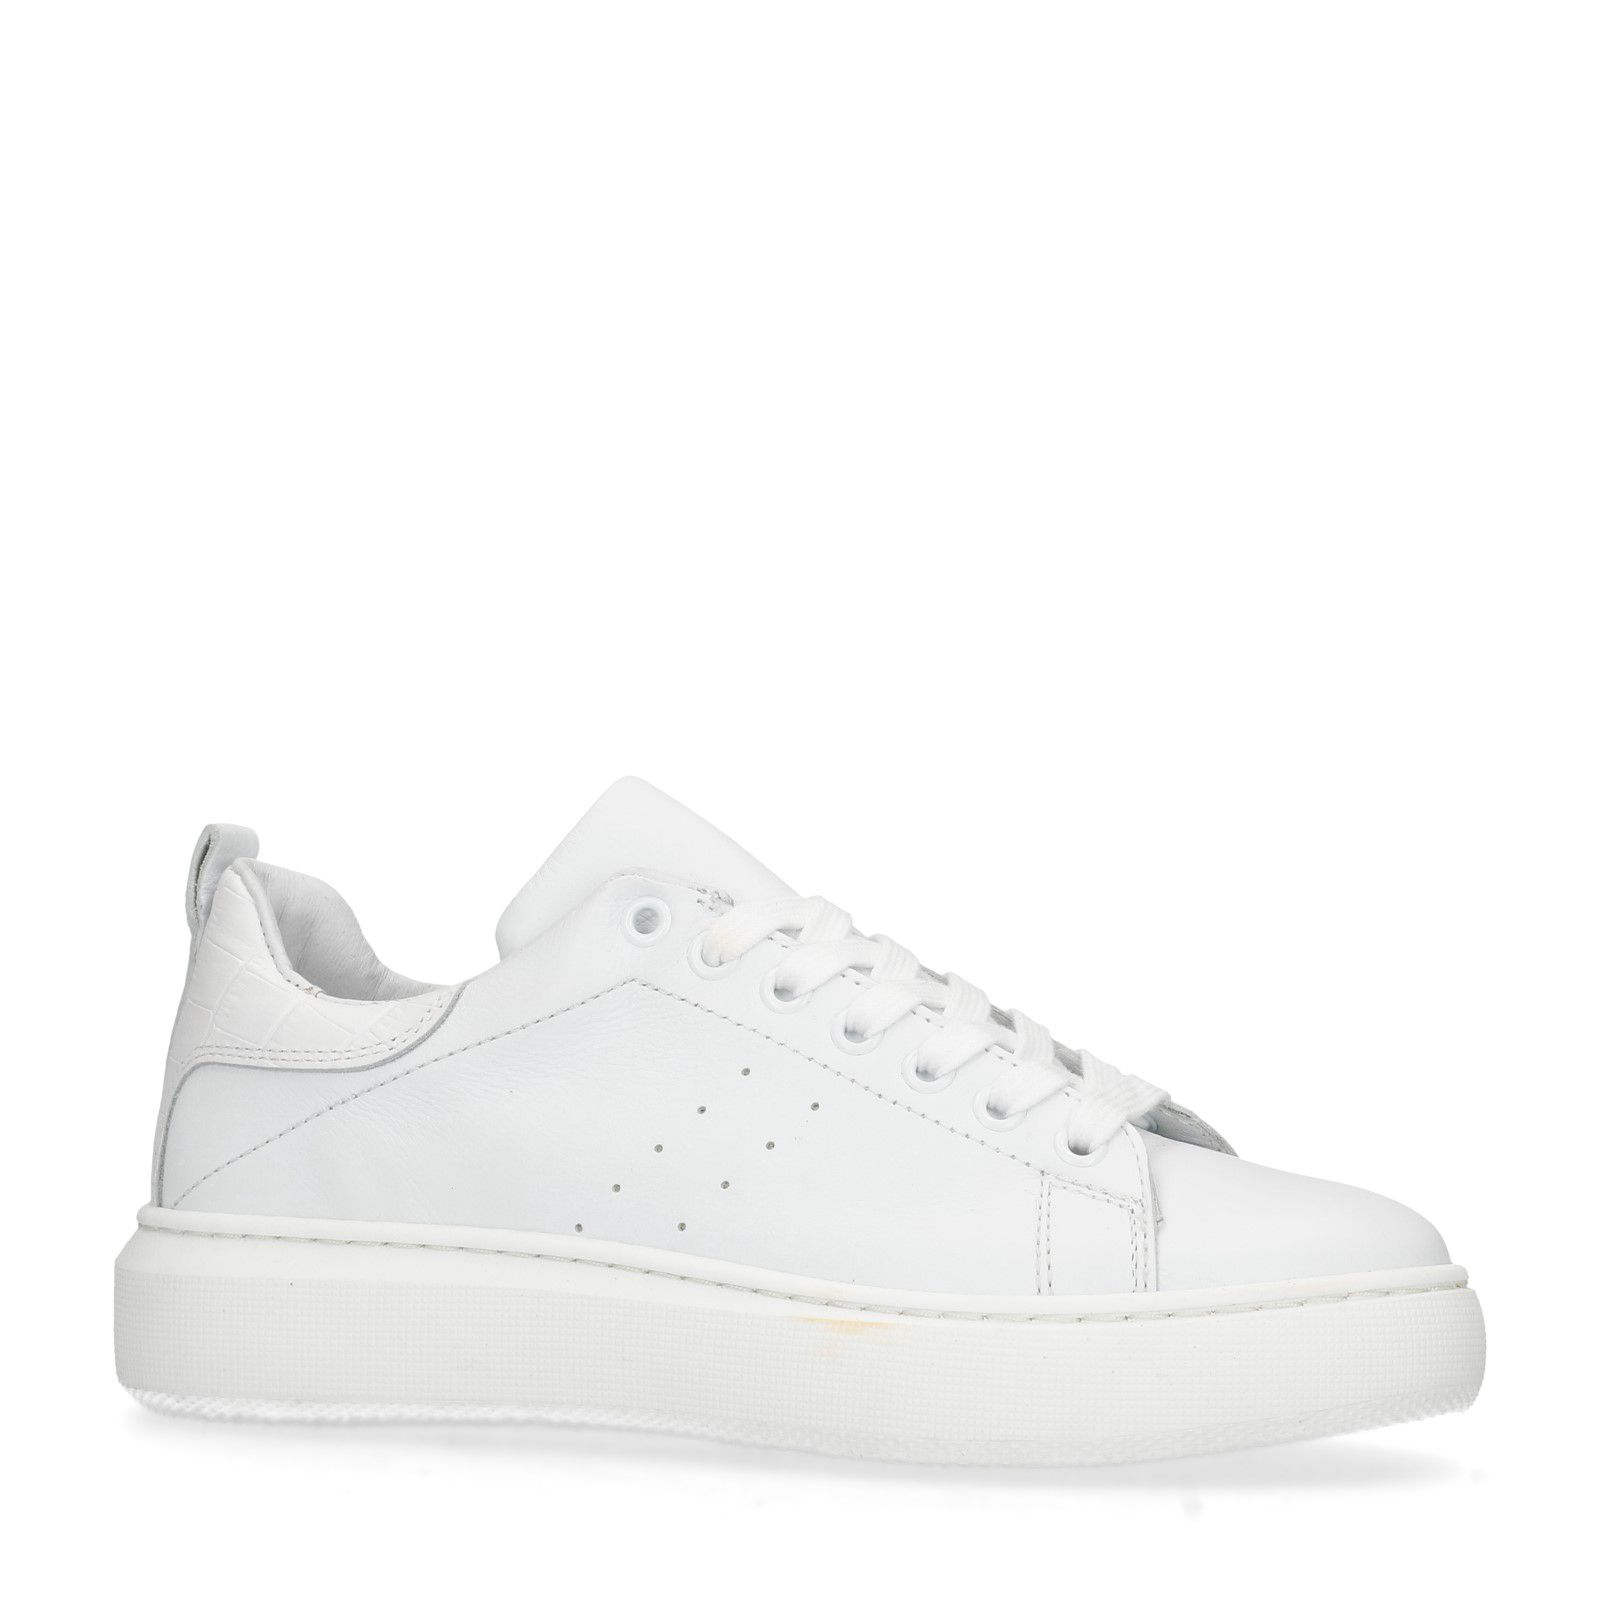 Sneakers Dames (Wit | Sneakers, Adidas sneakers, Fashion